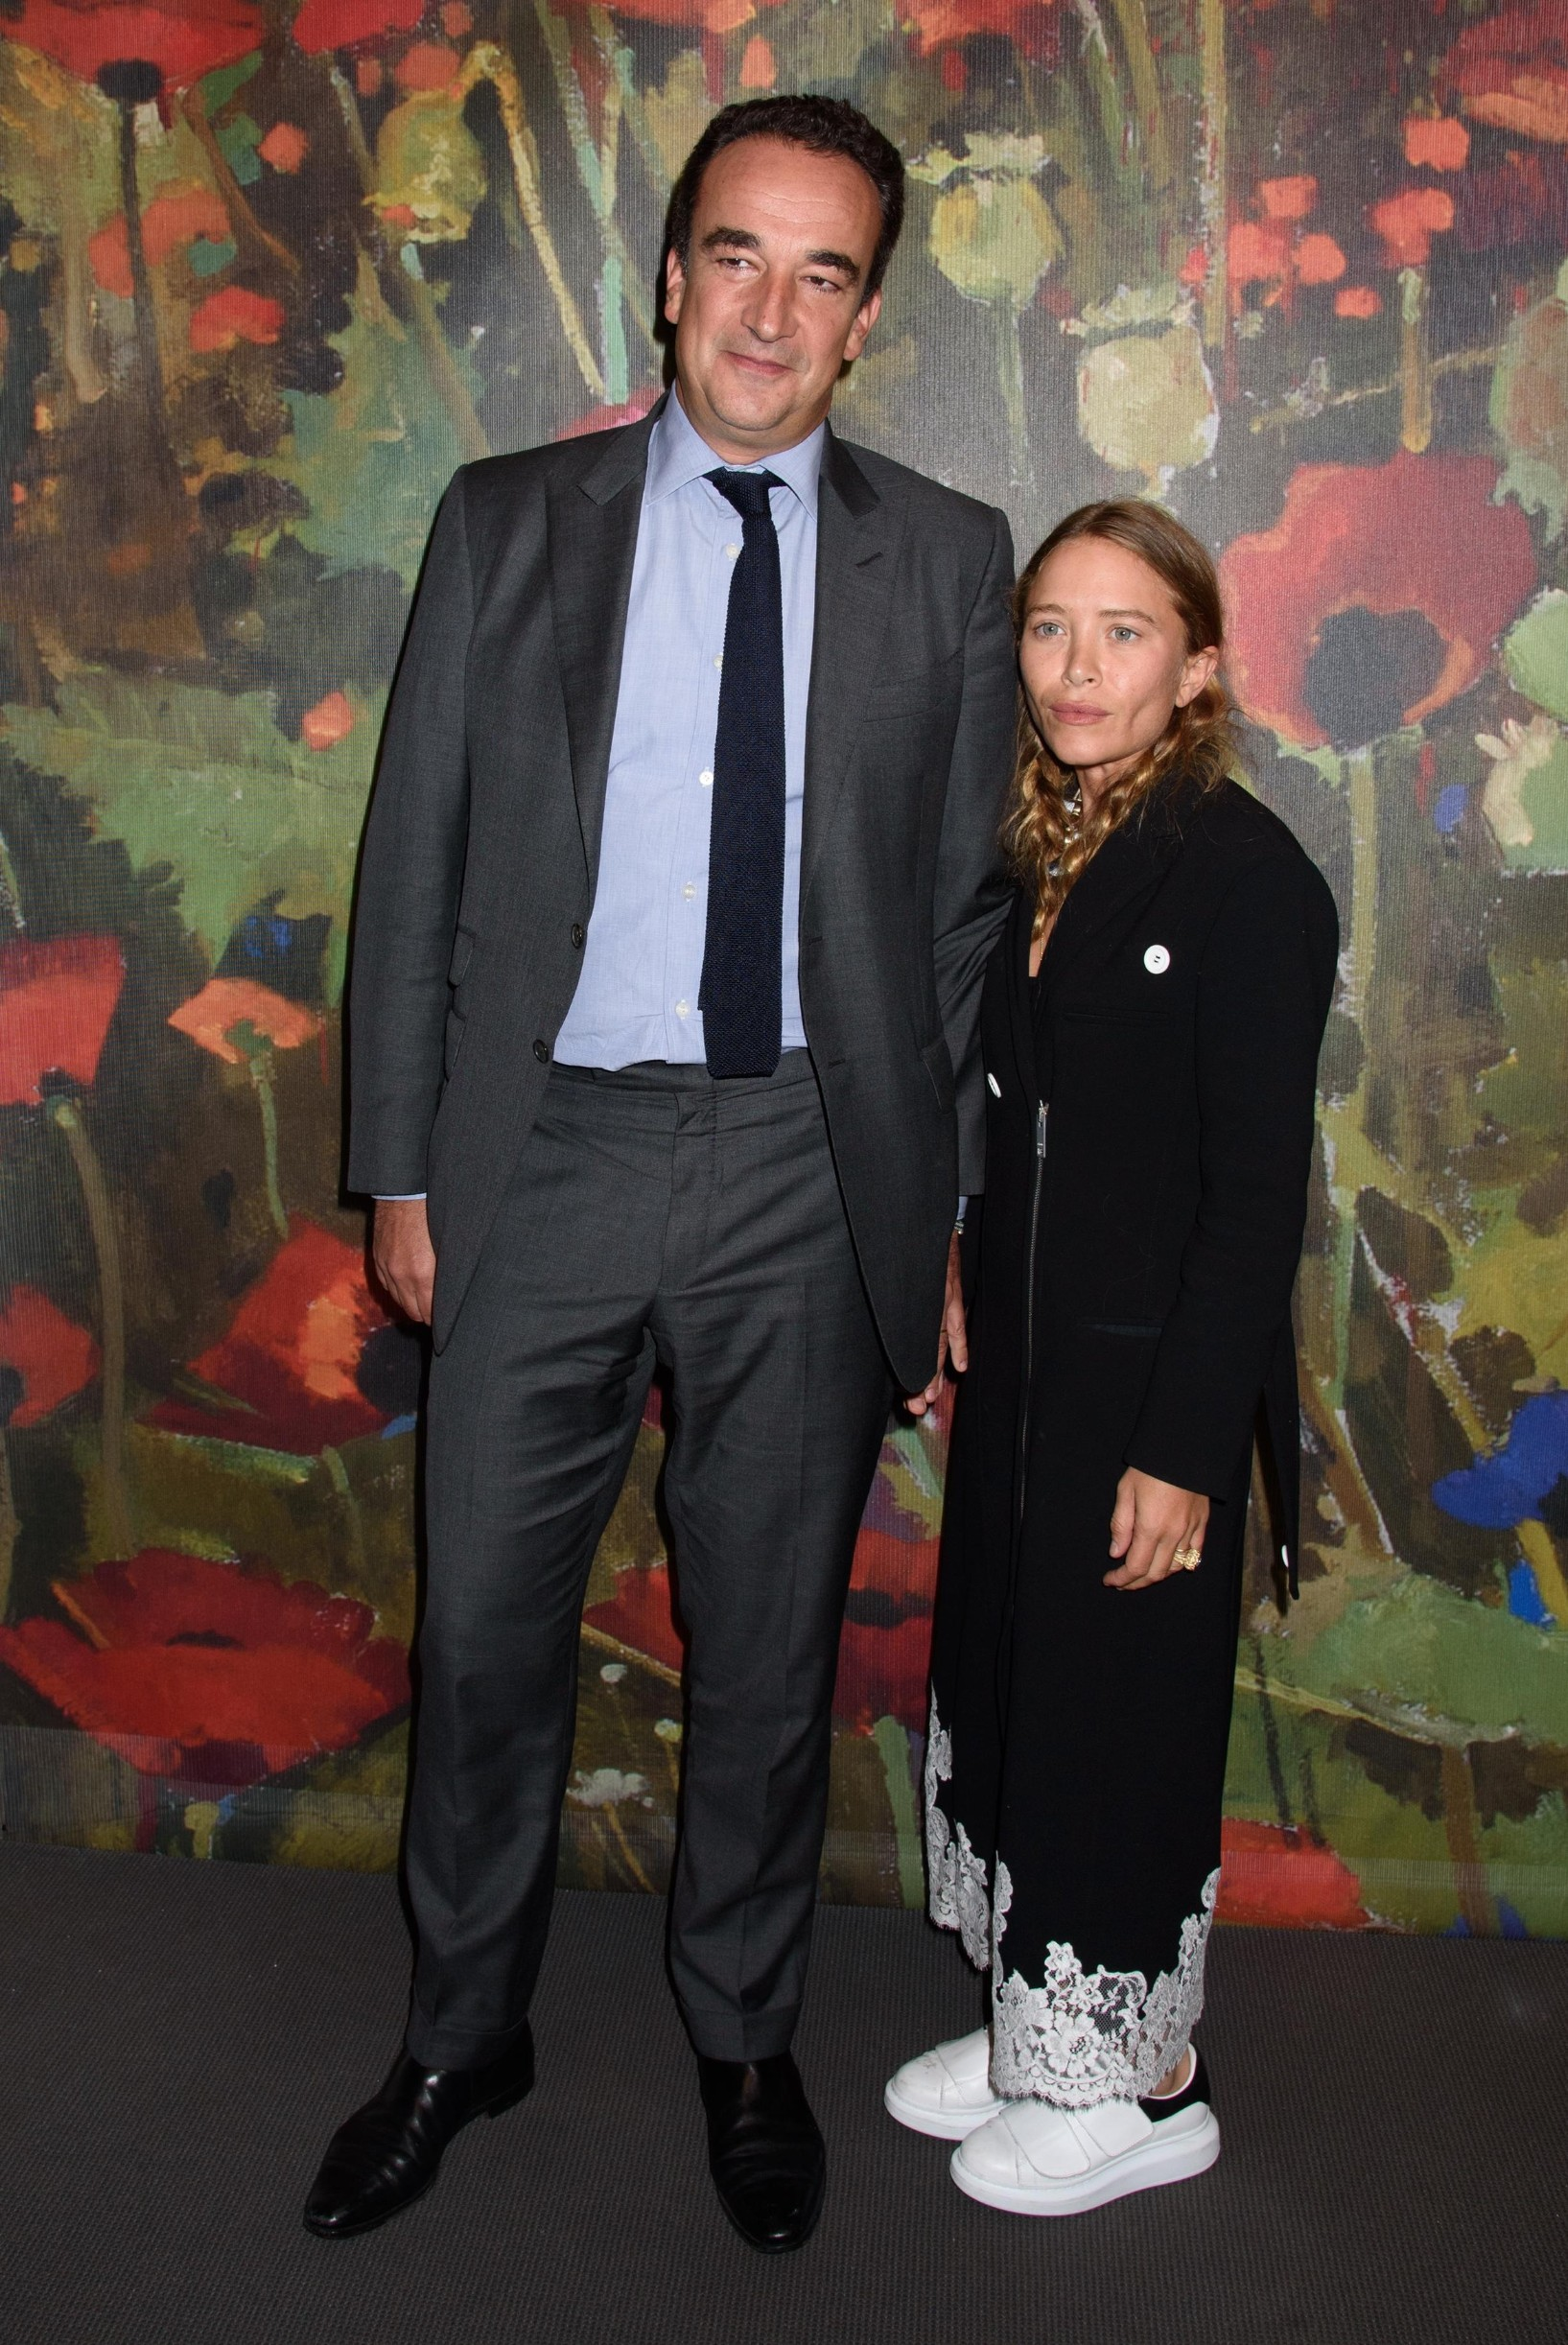 , New York, NY - 20171011 - 'Take Home A Nude' Annual Auction  Sotheby's  -PICTURED: Oliver Sarkozy, Mary Kate Olsen -, Image: 352550620, License: Rights-managed, Restrictions: , Model Release: no, Credit line: Janet Mayer / INSTAR Images / Profimedia